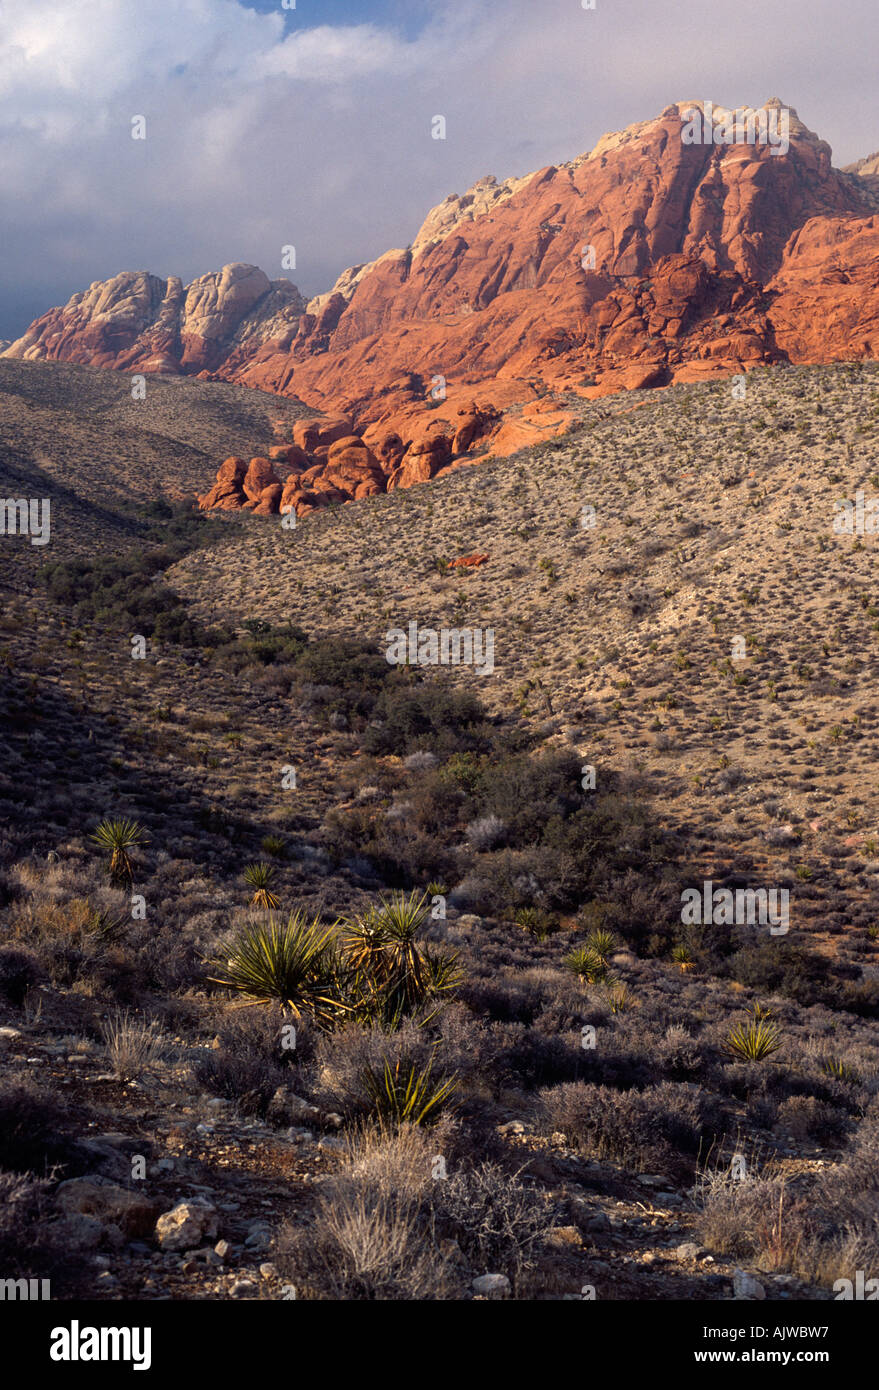 Mojave Desert ravine with red sandstone and gray limestone formations, Red Rock Canyon National Conservation Area, Nevada - Stock Image